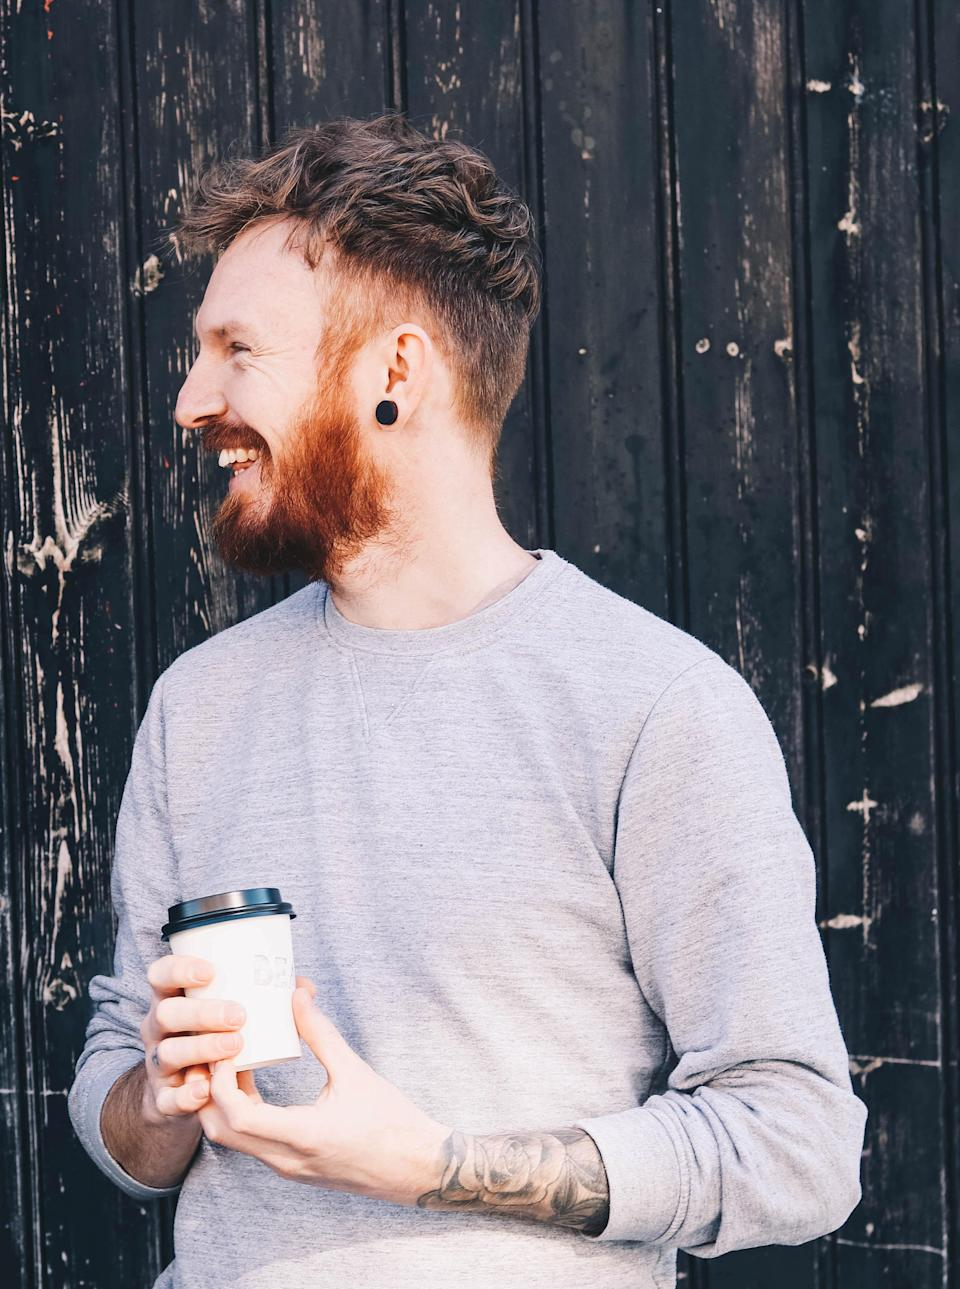 Craig Bunting, co-founder of BEAR